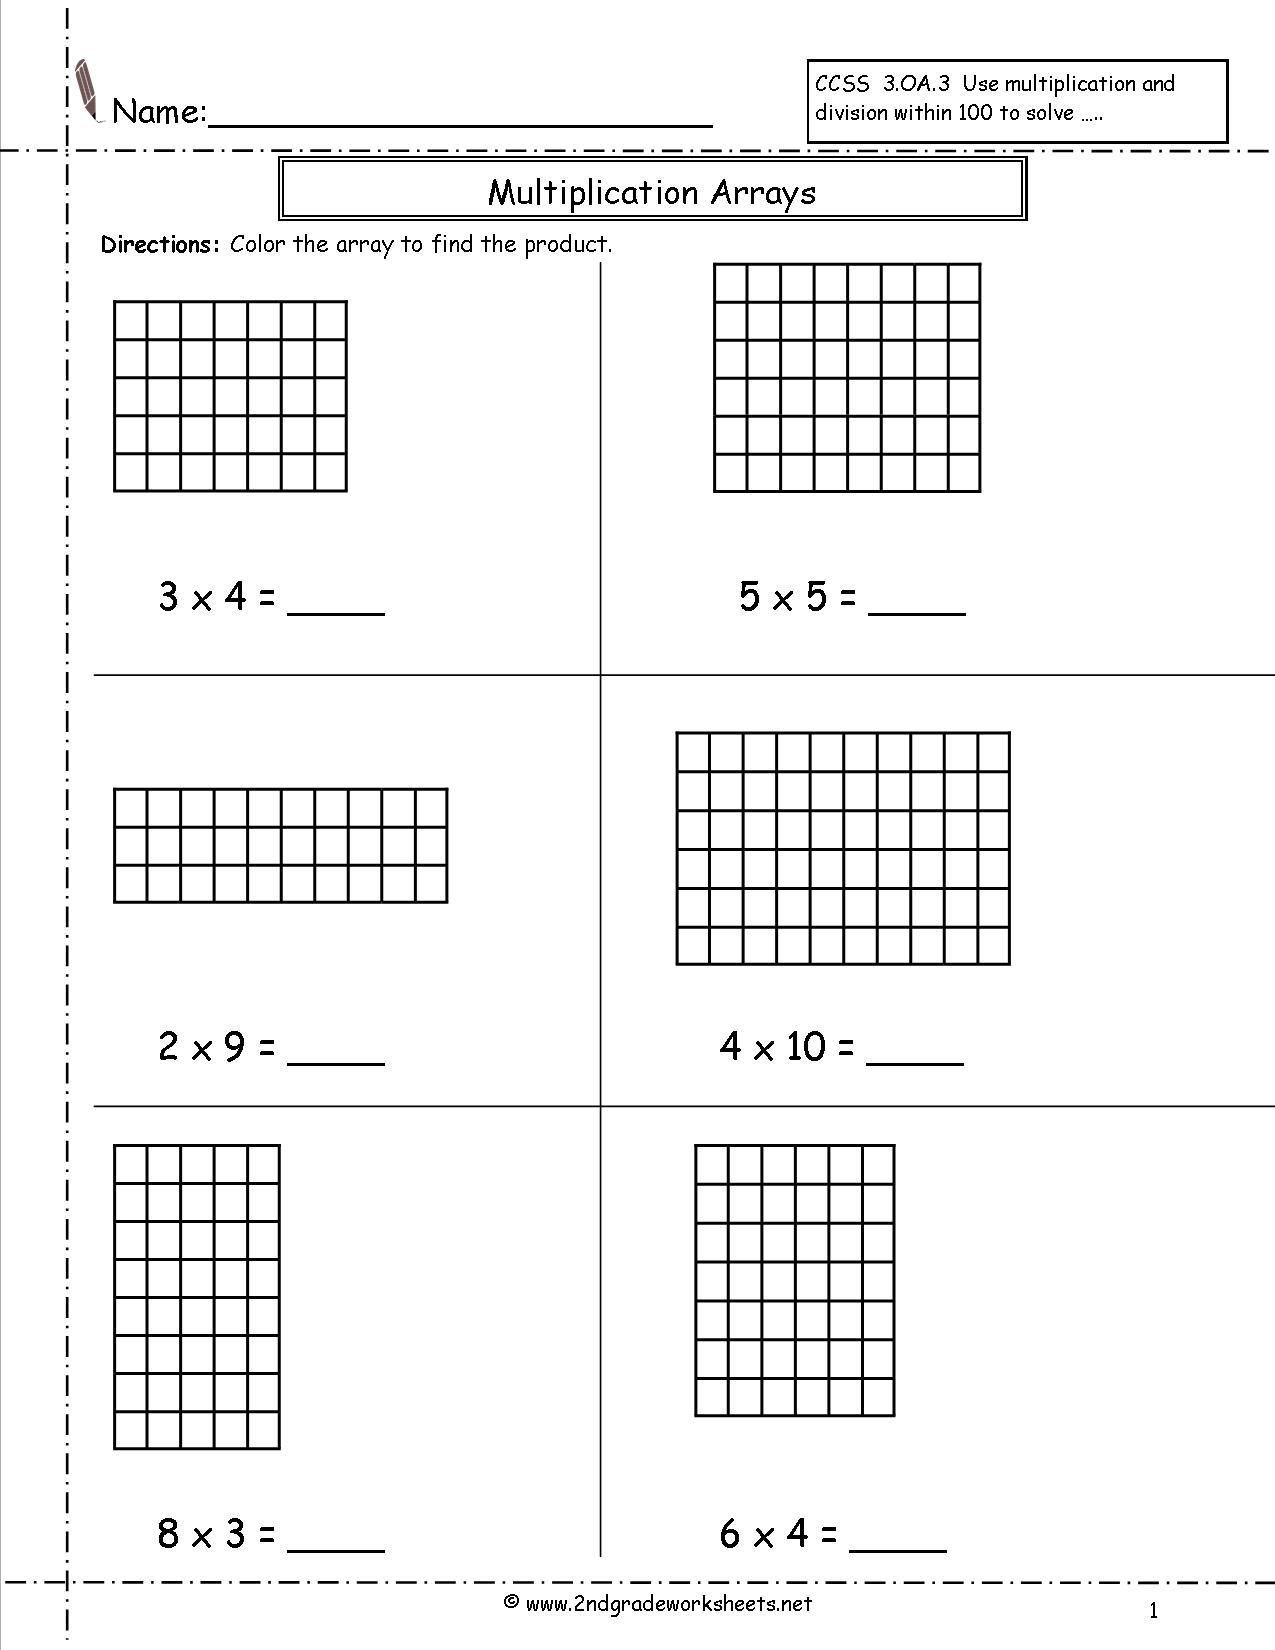 arrays worksheets Multiplication Arrays Worksheets – Make Multiplication Worksheets